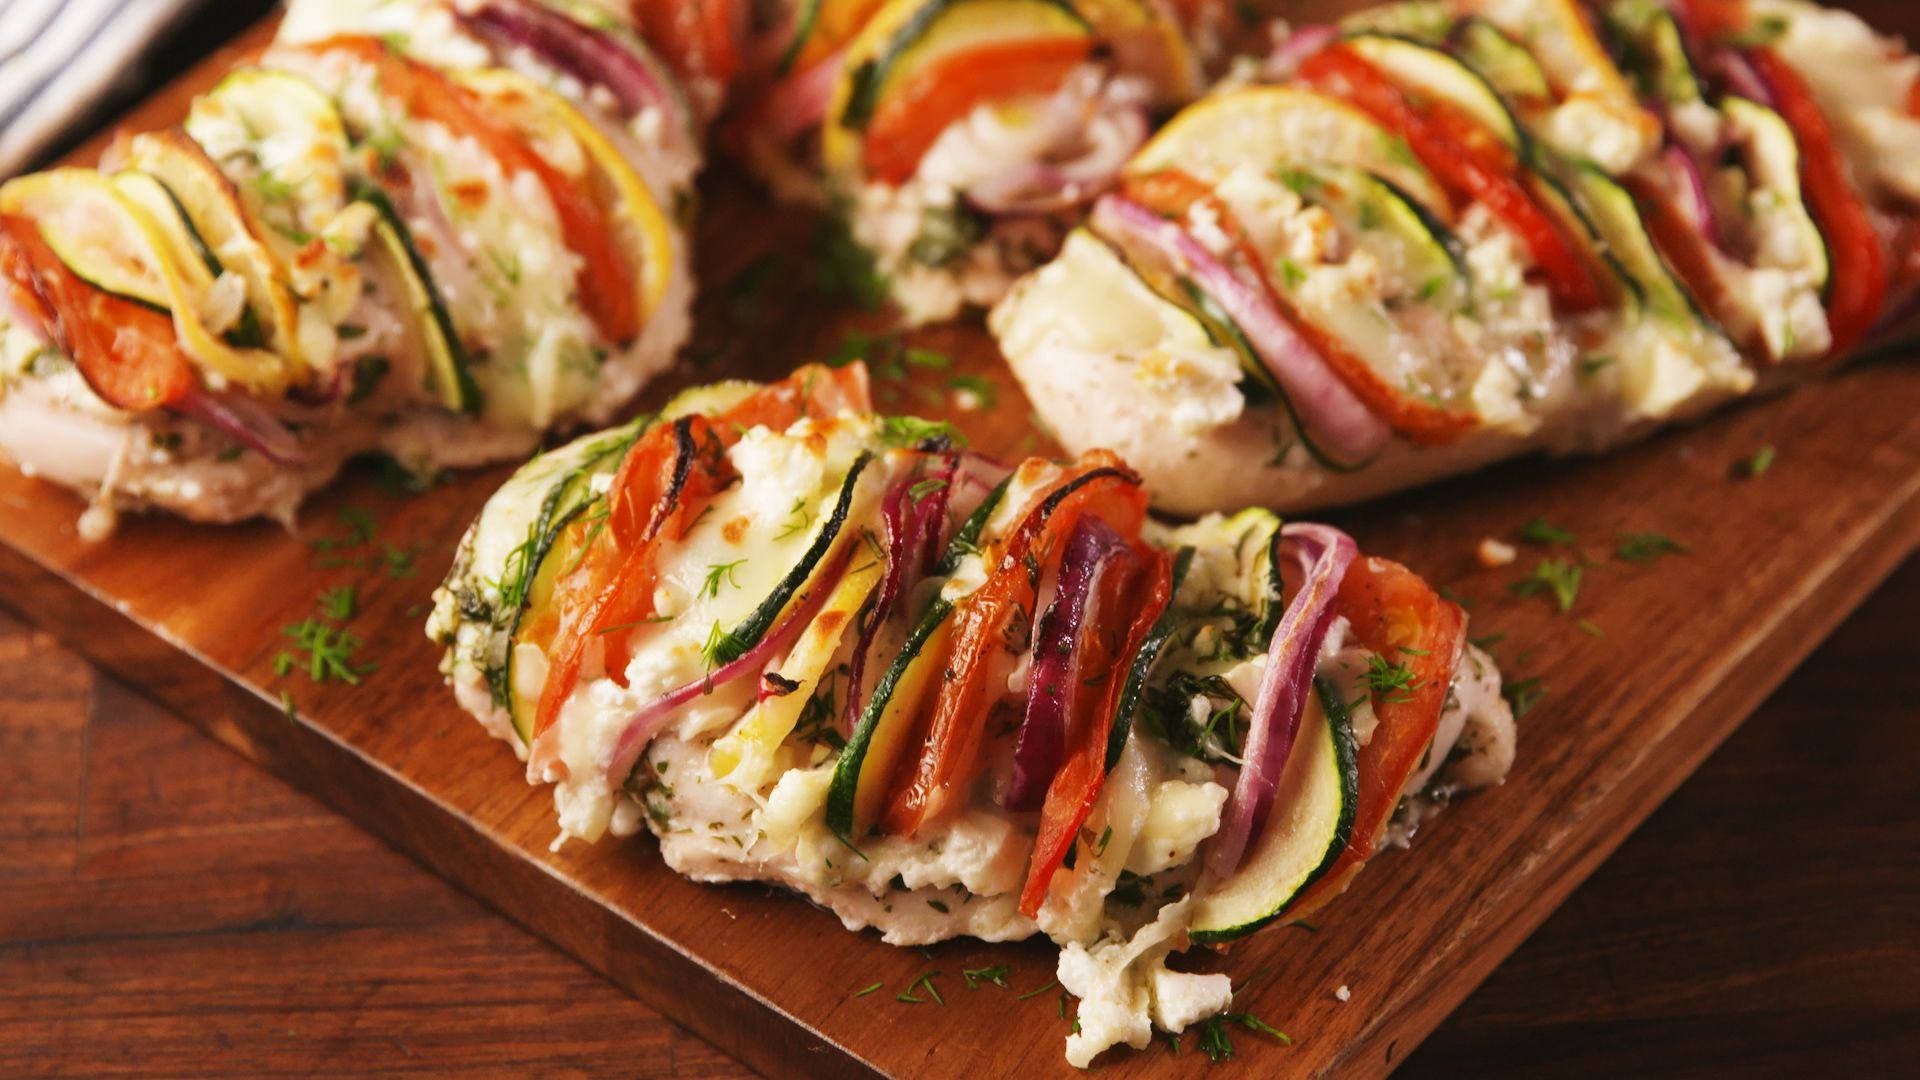 80 easy healthy dinner ideas best recipes for healthy dinners 80 easy healthy dinner ideas best recipes for healthy dinnersdelish forumfinder Images